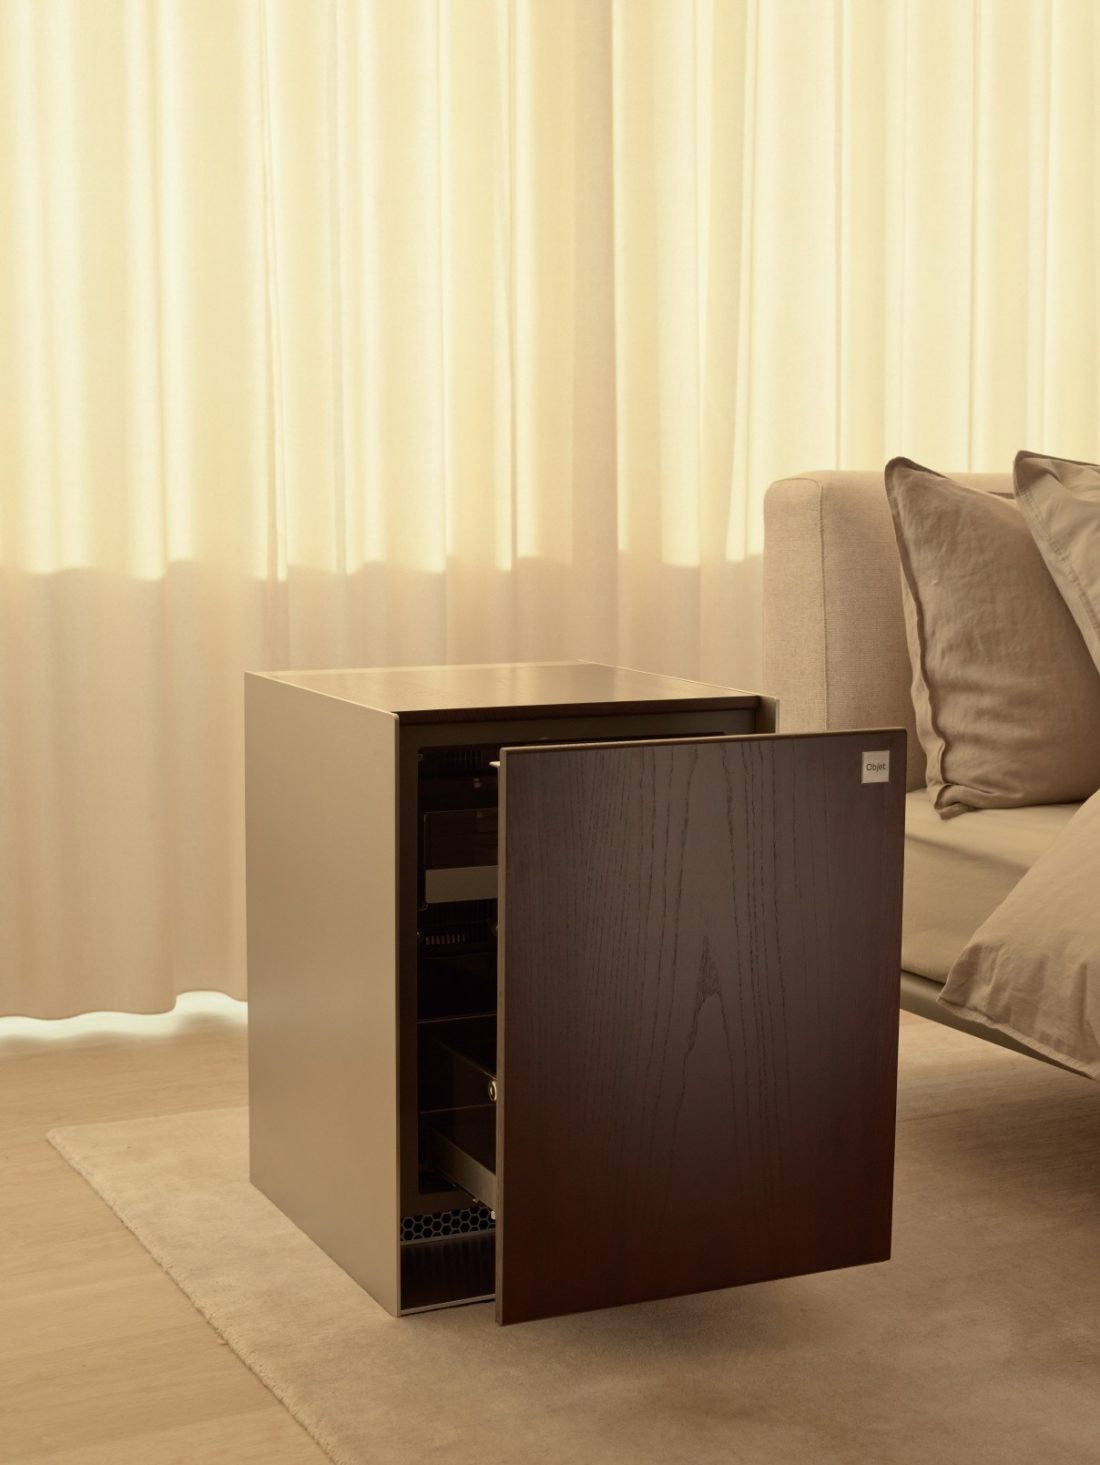 Close-up view of the LG OBJET Refrigerator with the bed visible to its right